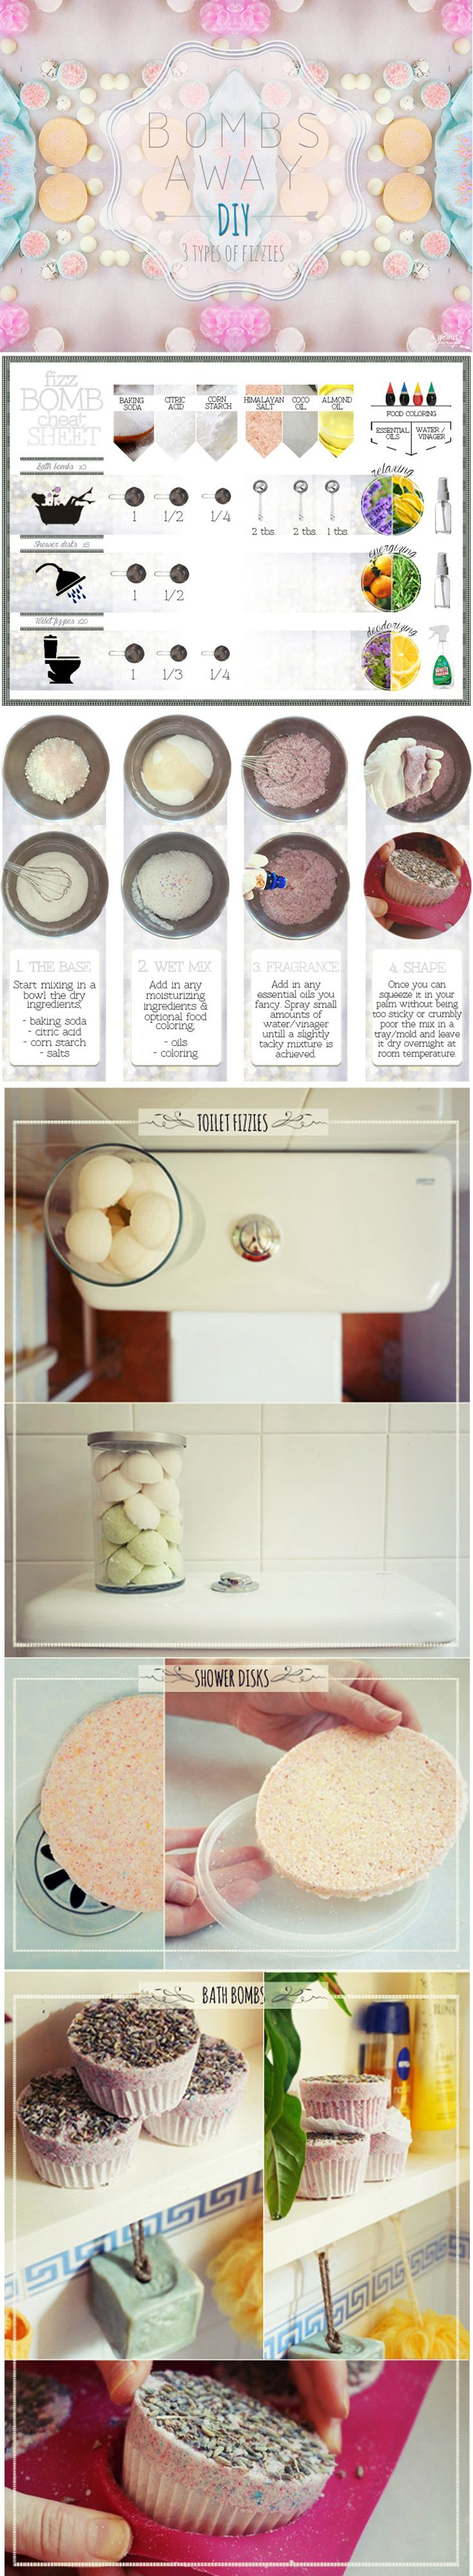 Bathroom cleaner bomb - How To Diy Bath Shower And Toilet Fizzies Diy Bath Bombs Shower Fizzies